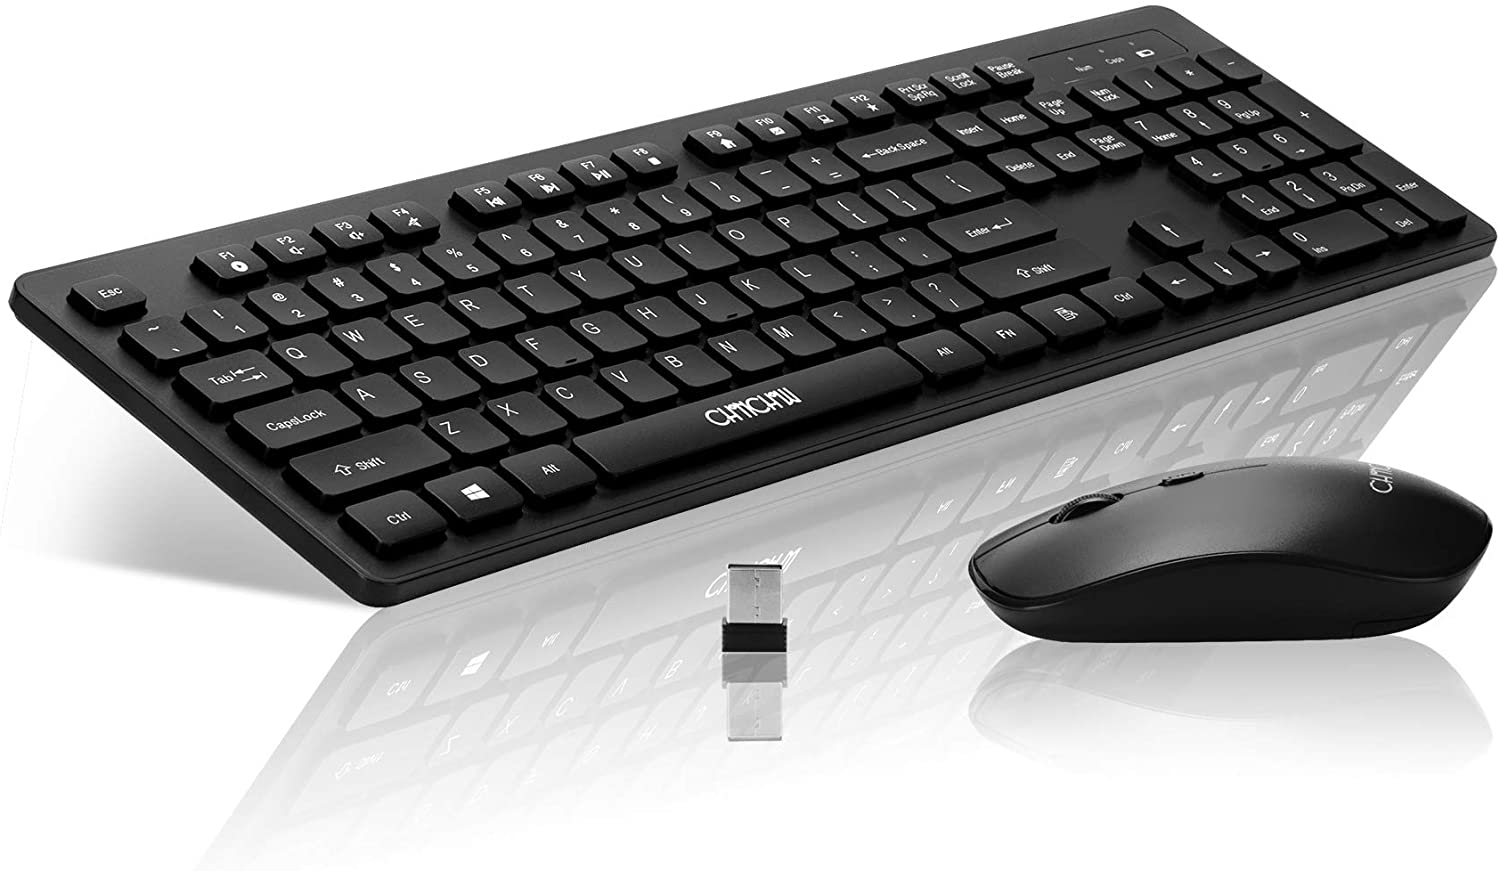 Wireless USB Keyboard Mouse Combo 2.4GHz CHONCHOW W2601 with Multimedia Key Business Standare Cordless Portable Keyboard and Mice Compatible with Windows Mac MacBook Air Computer Office(Black,Quiet)